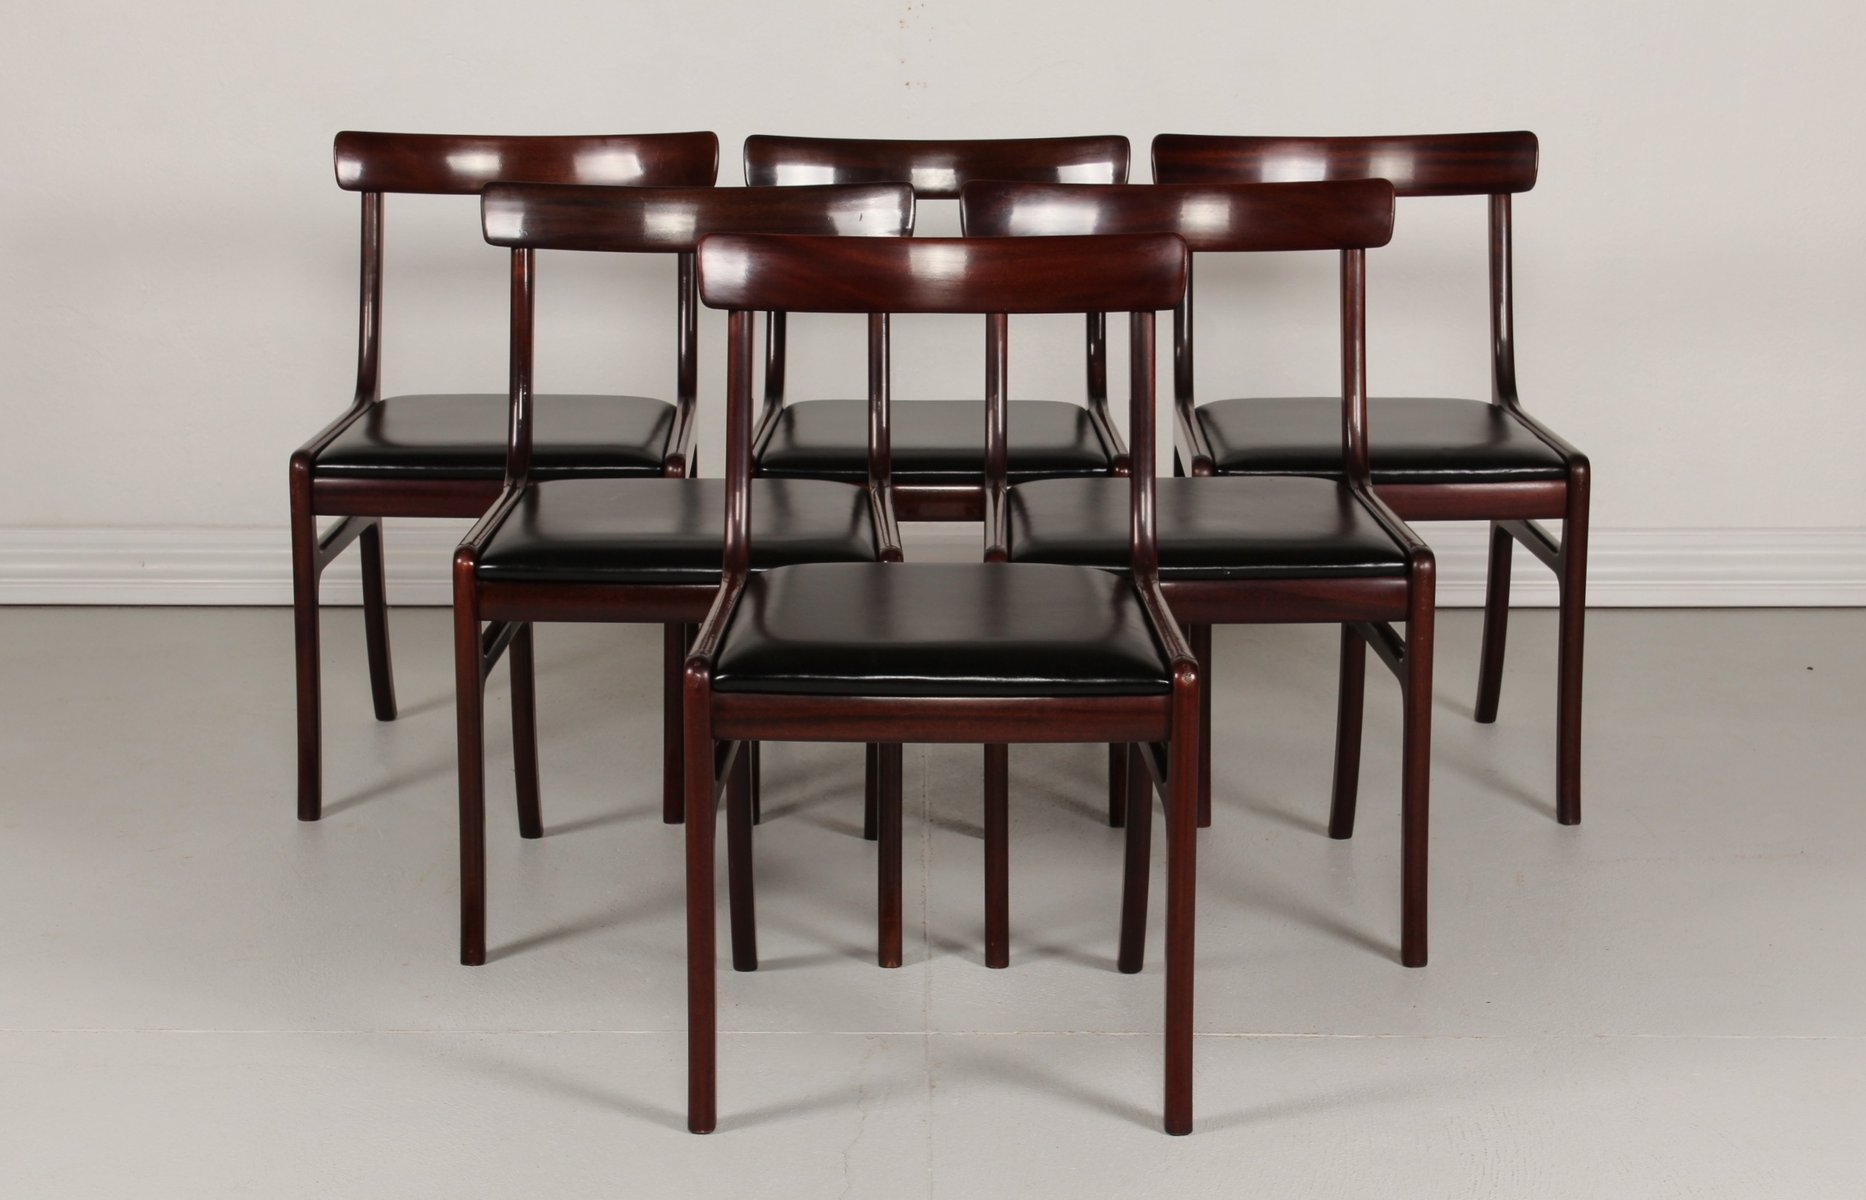 Vintage Danish Rungstedlund Mahogany & Leather Chairs by Ole